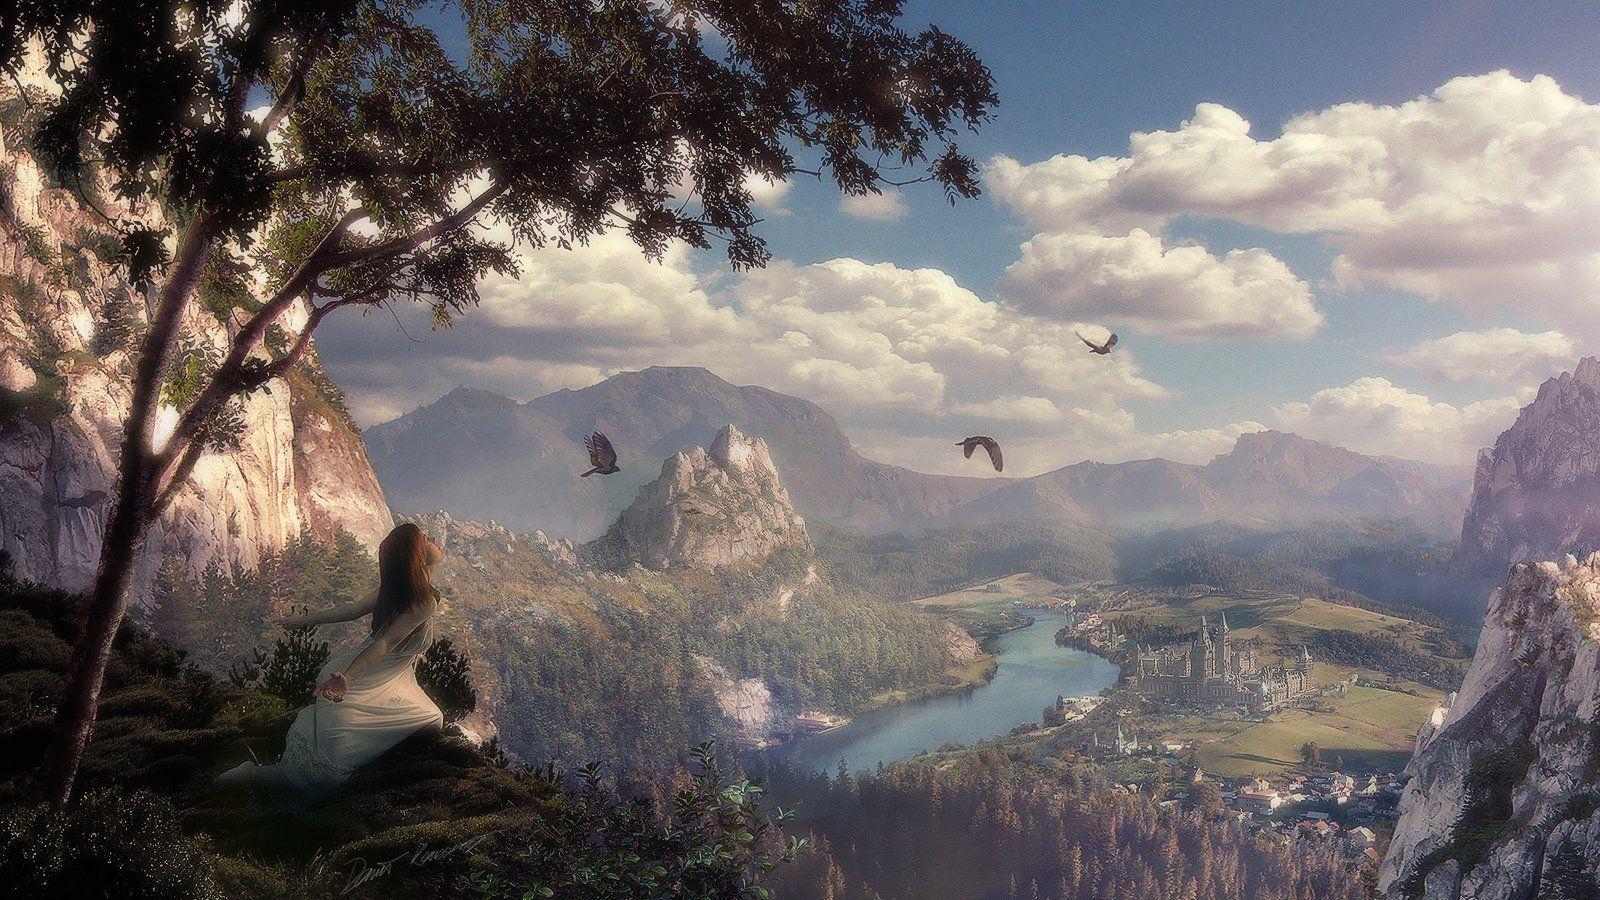 Fantasy Landscape Wallpapers Desktop 13197 Full HD Wallpapers